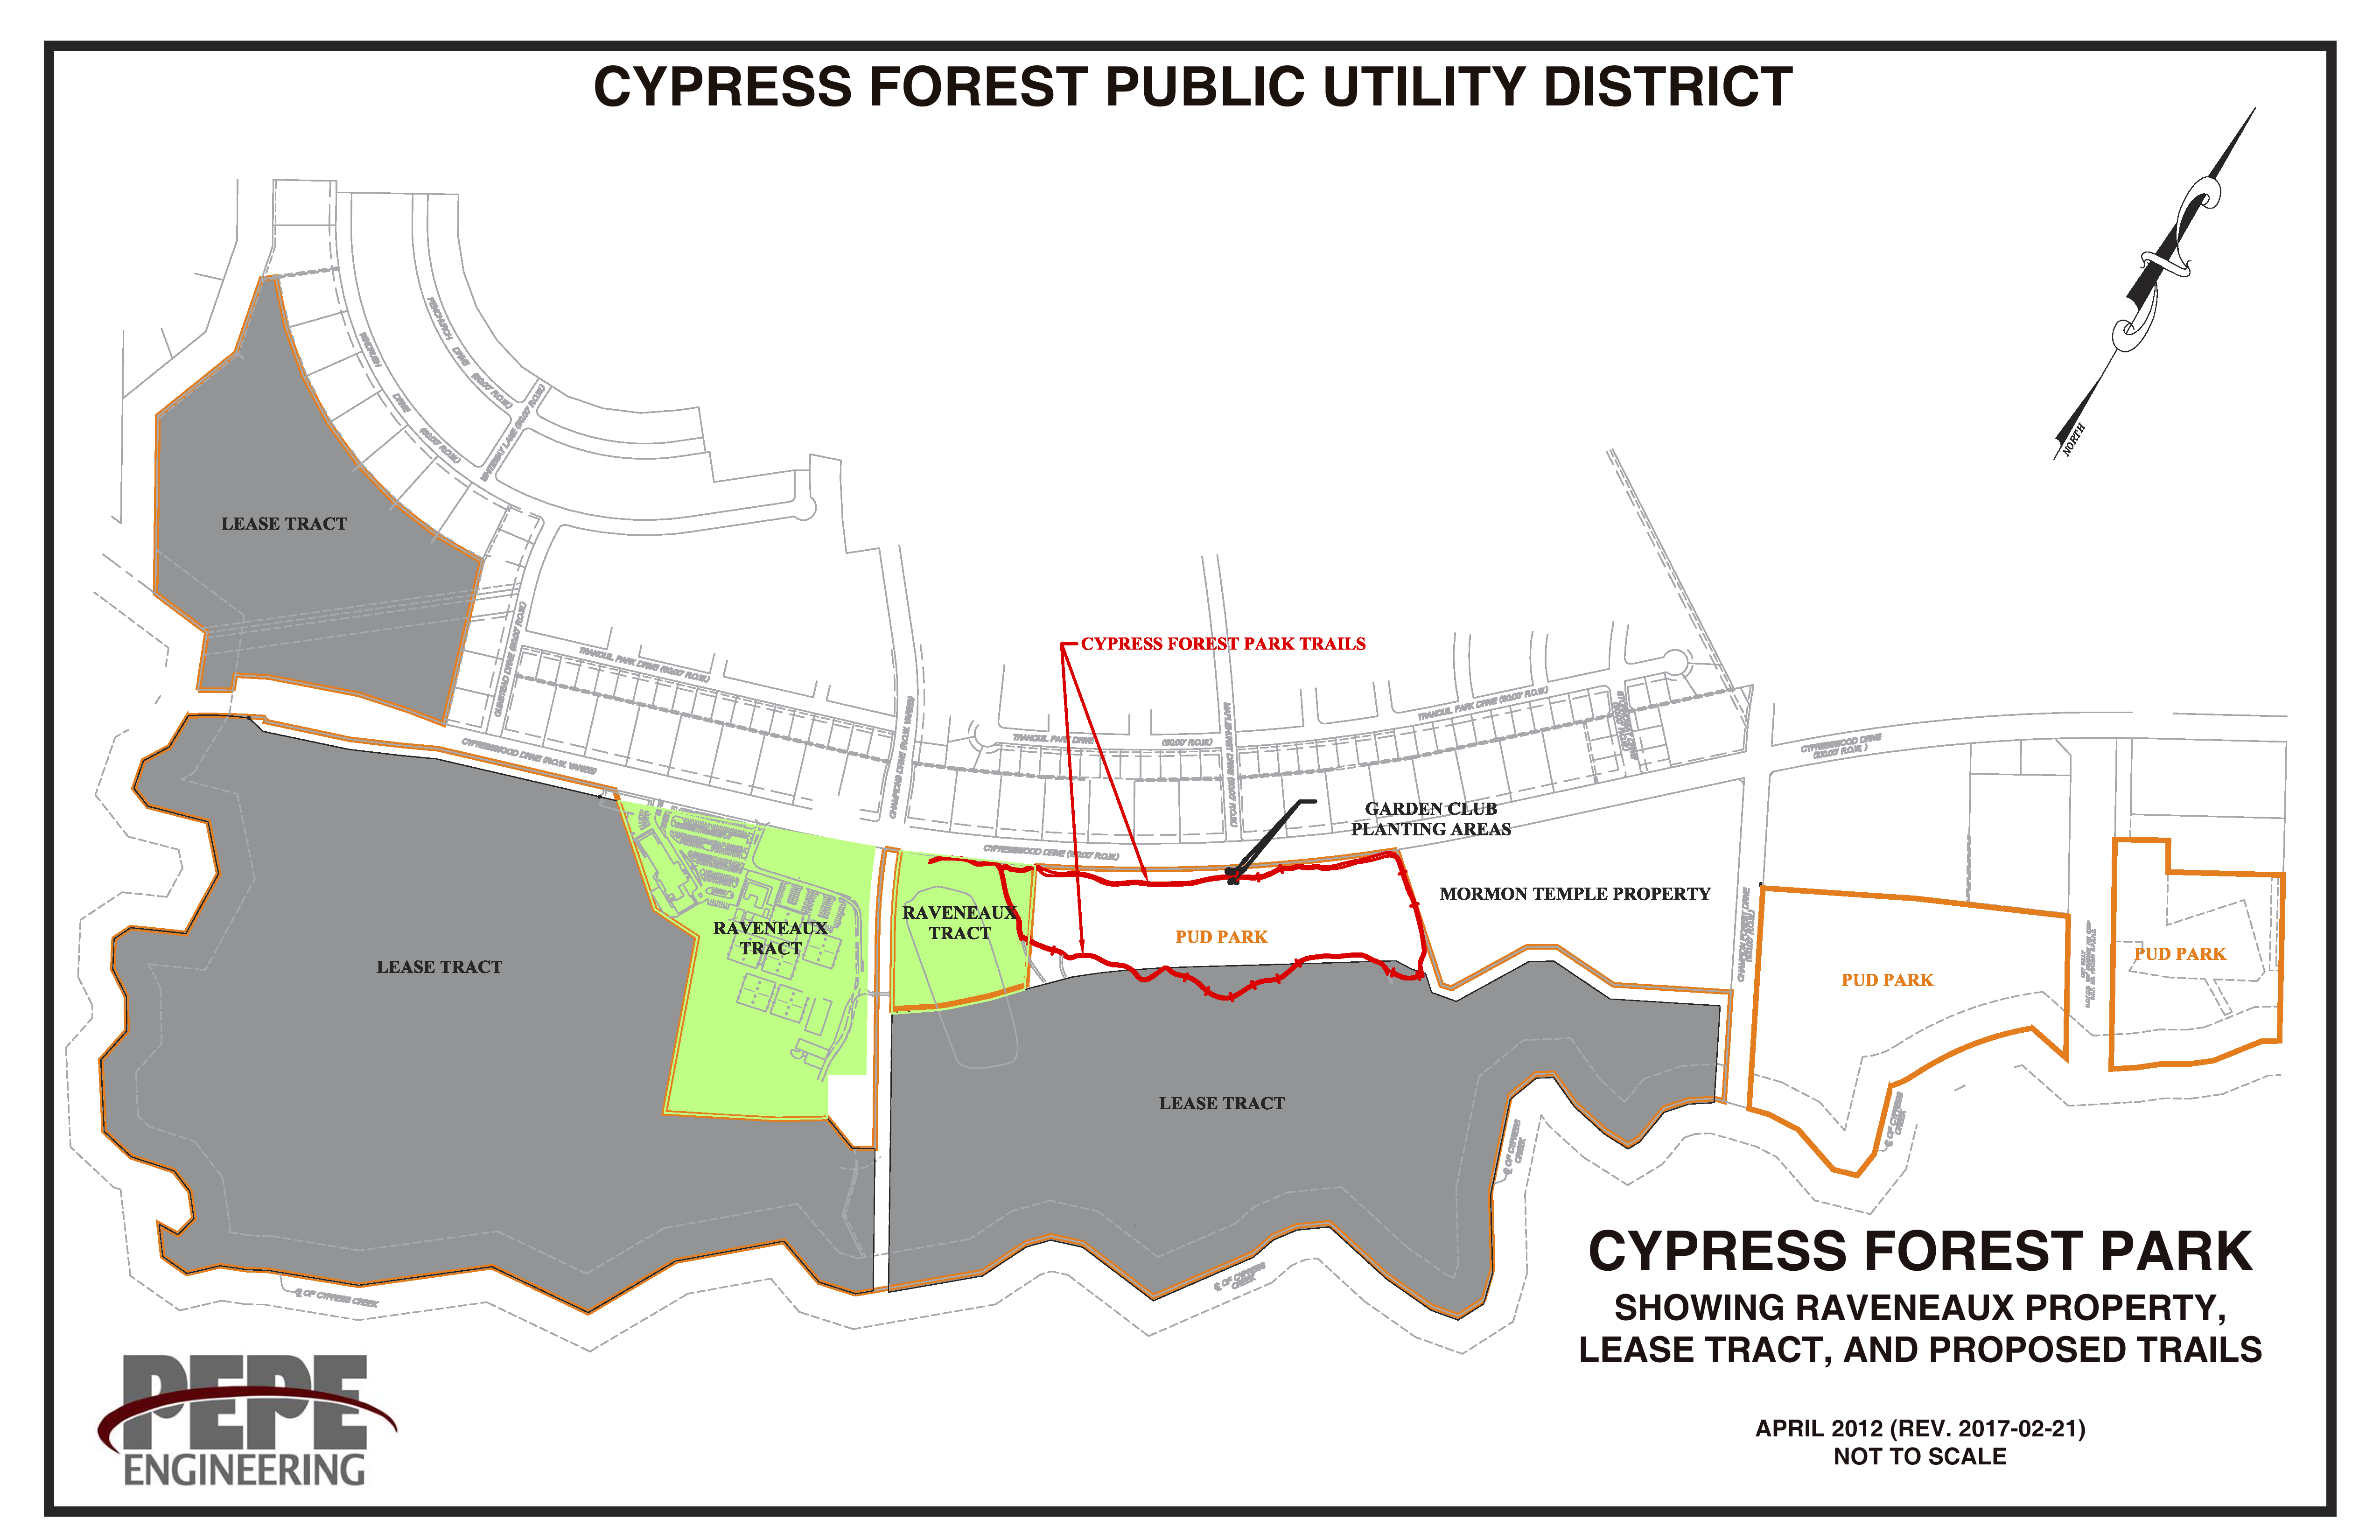 cyforestpud_raveneaux_map_lease_ownership_divide_property_trails